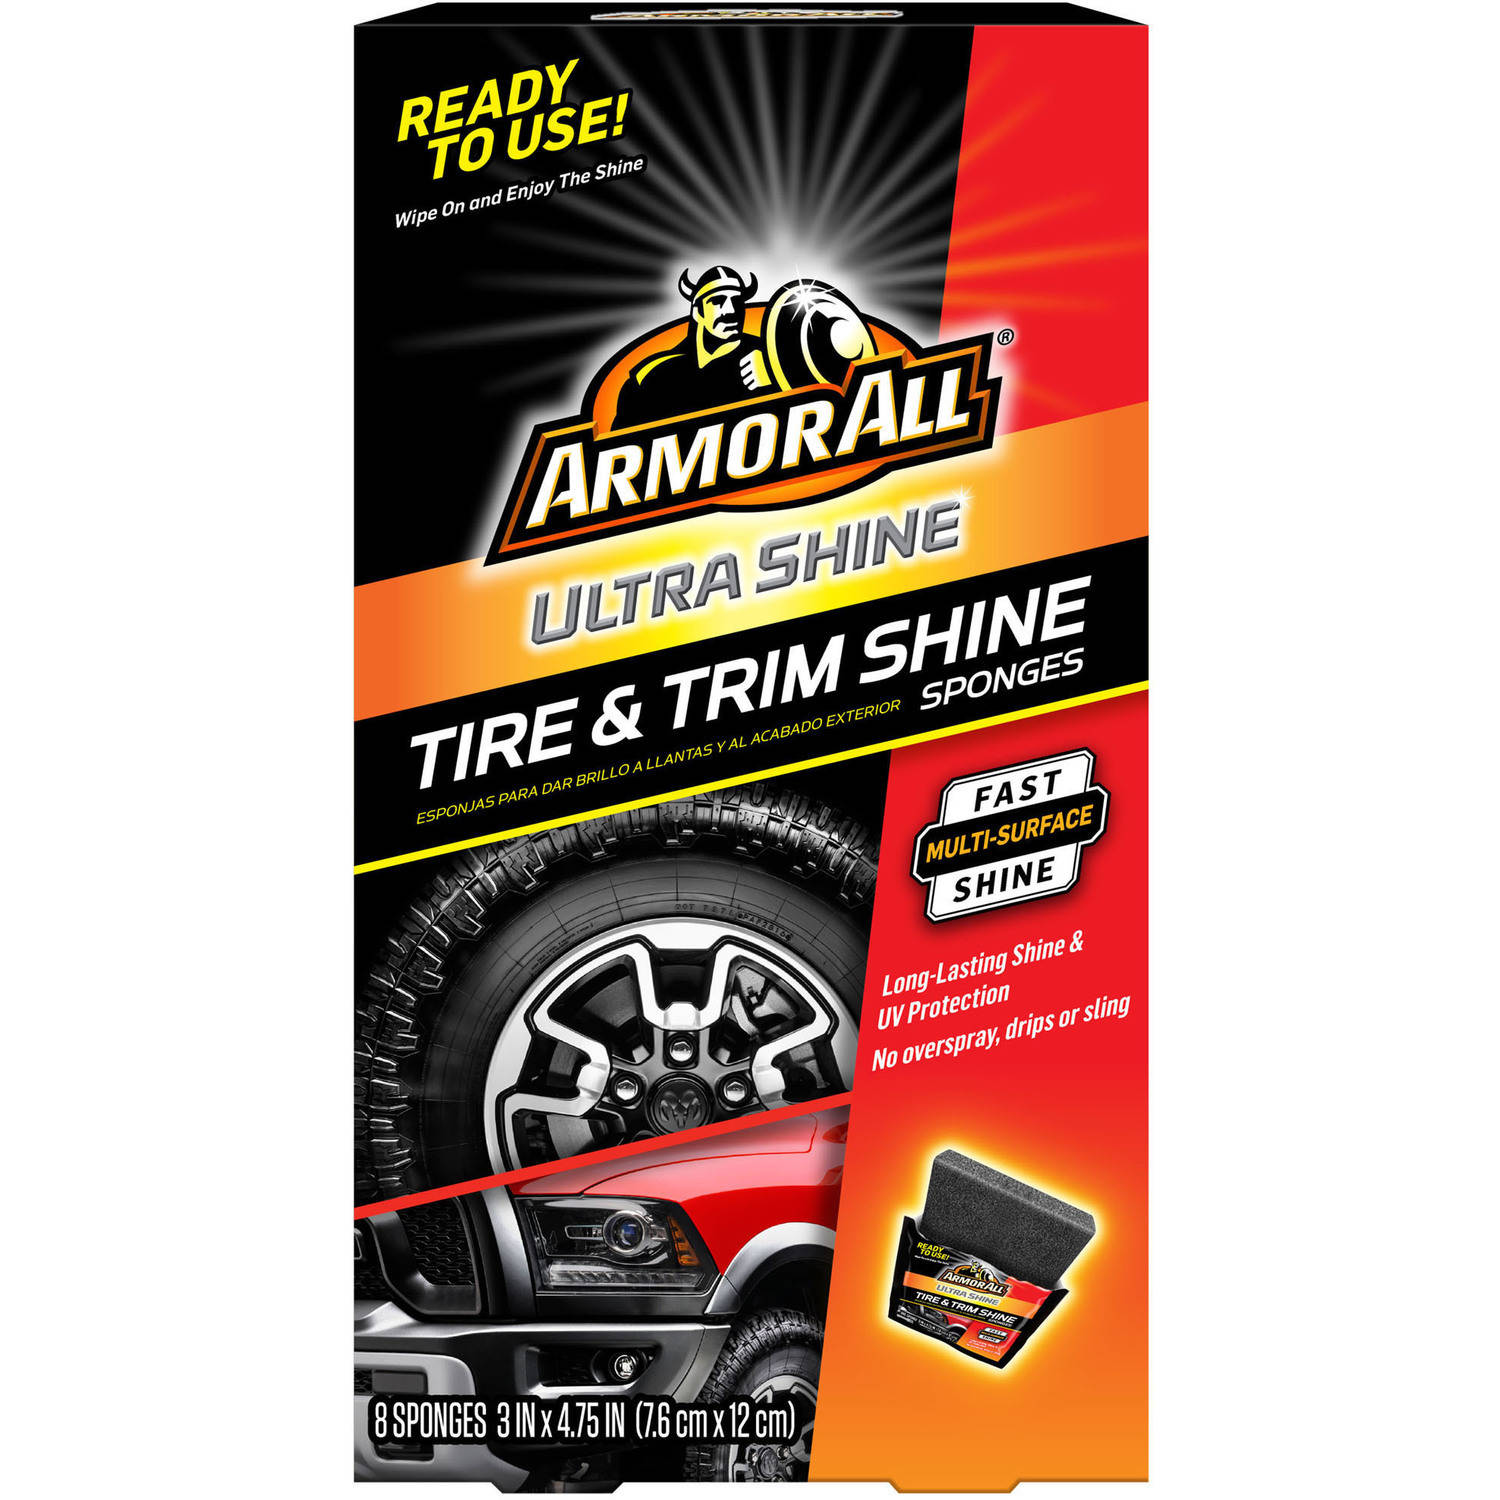 Armor All Ultra Shine Tire & Trim Sponge 8 count